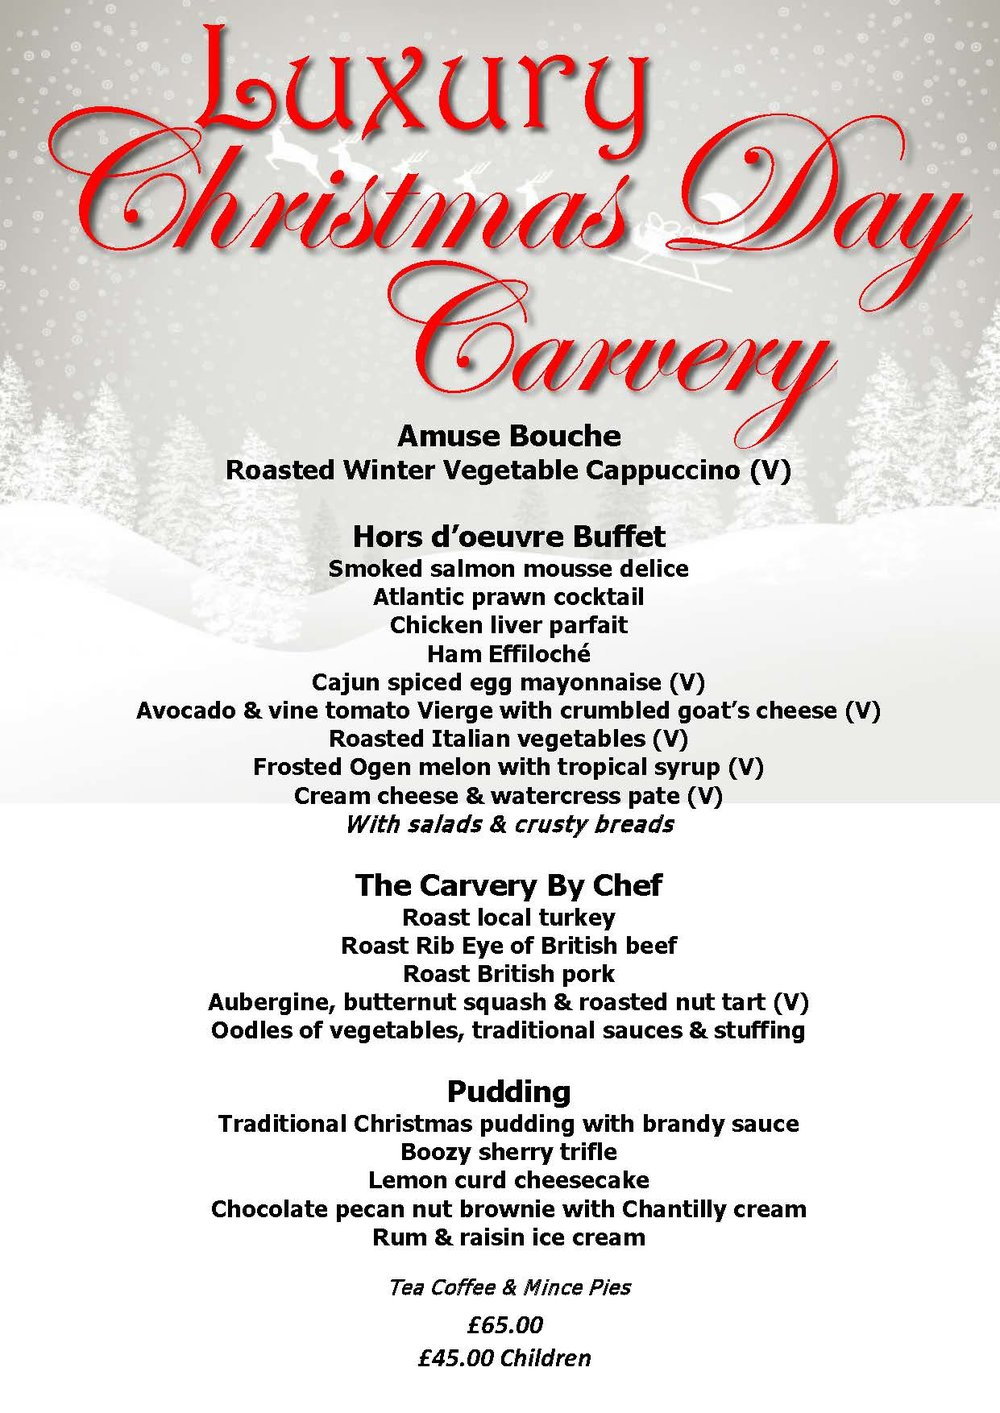 Christmas Day Carvery - Web Site.jpg